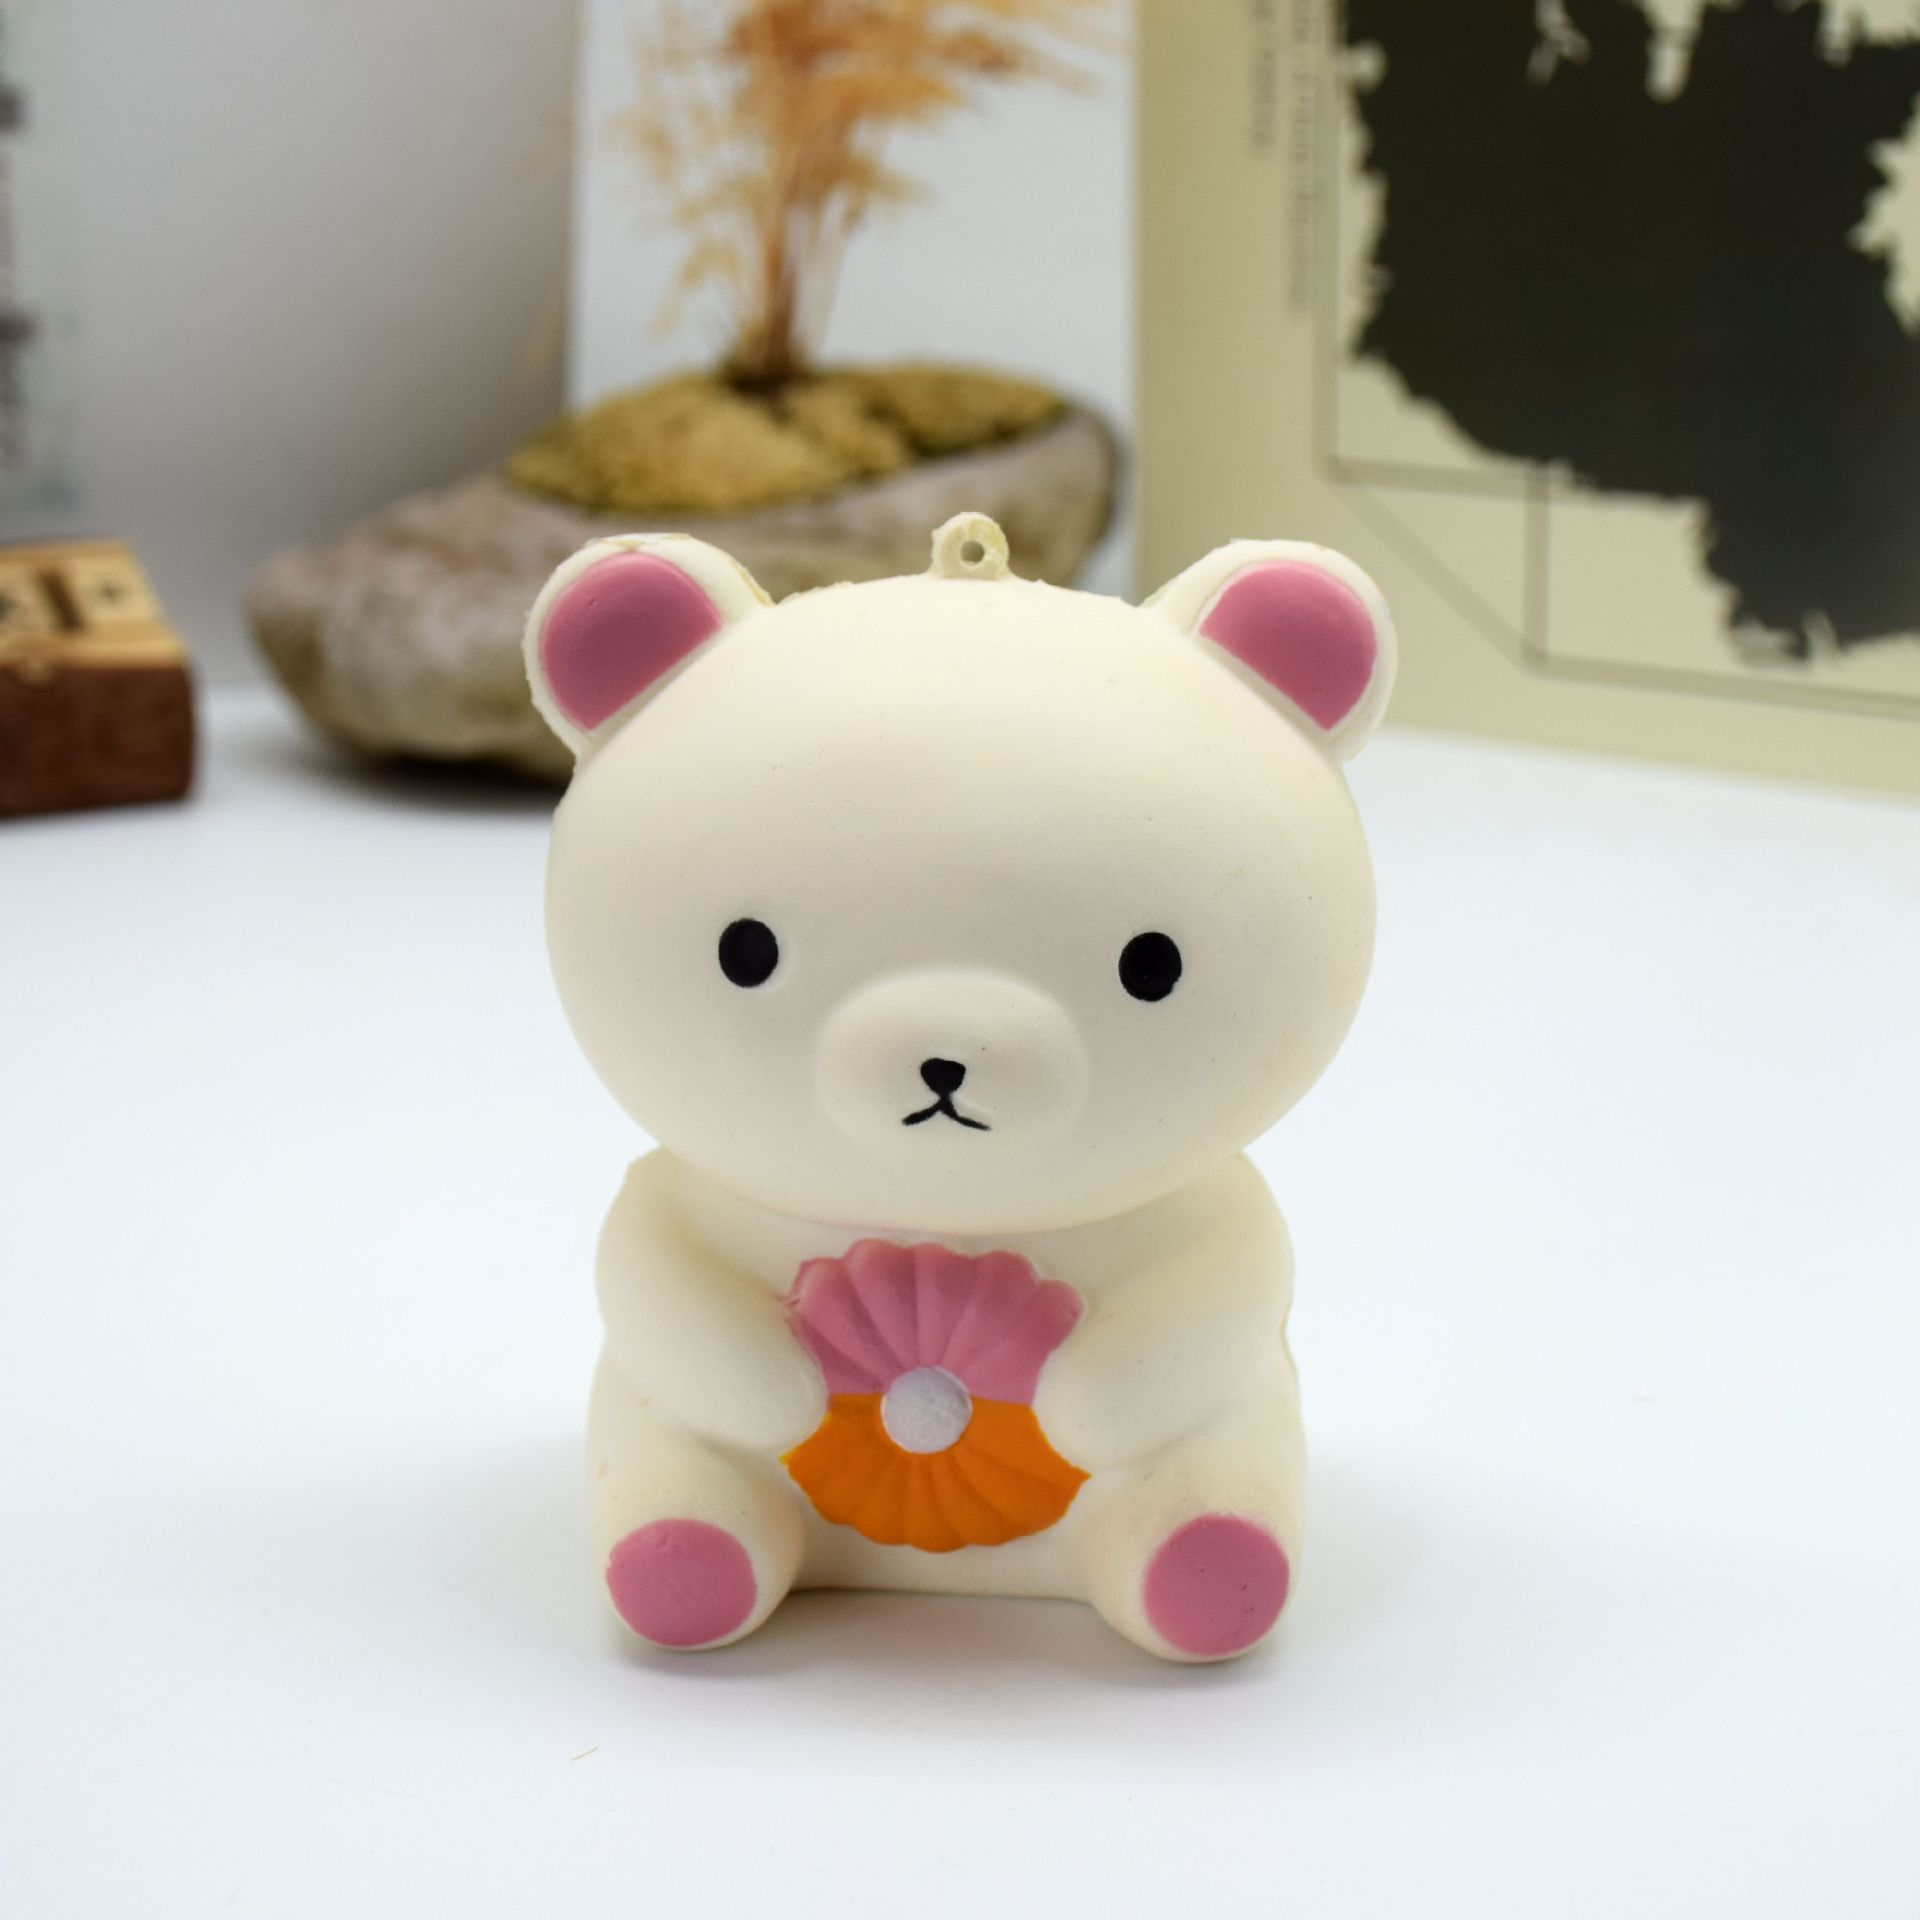 PU Cute Bear Slow Back To Toy Squishy Pressure Relief Toys Random Color